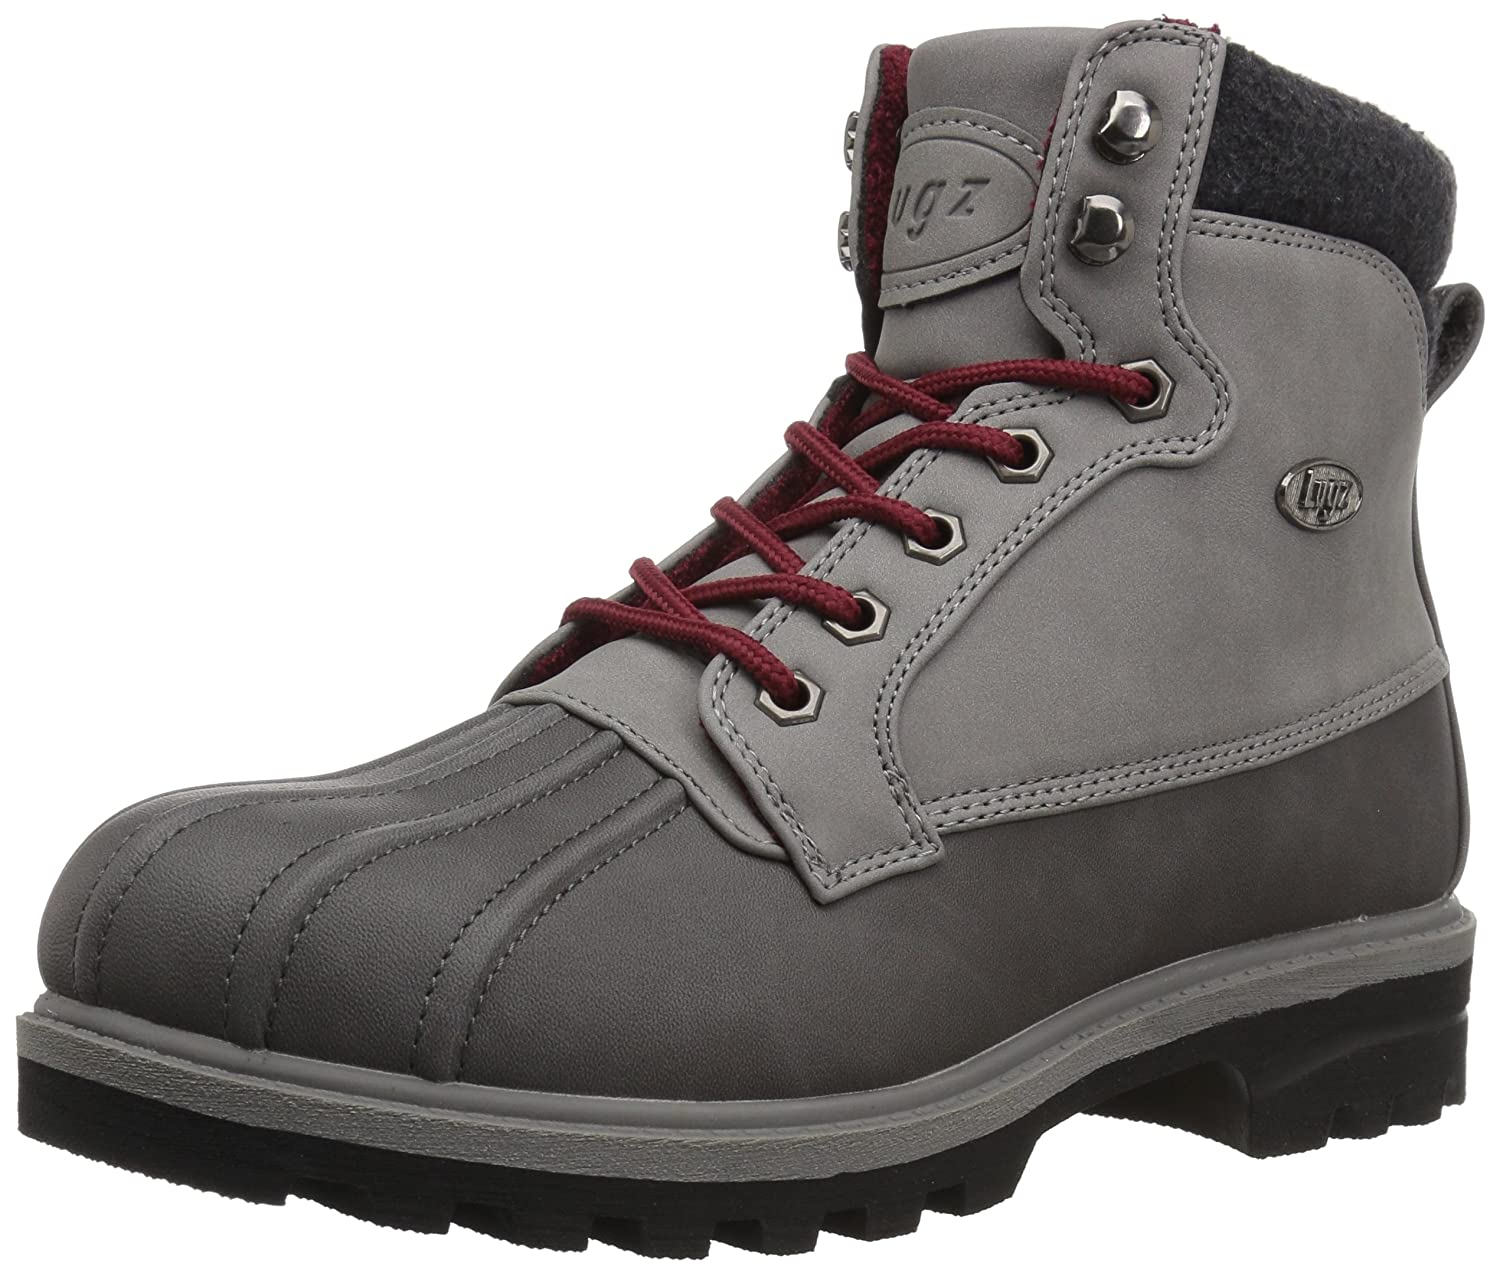 Lugz Women's Mallard Fashion Boot B073JW866Z 9.5 B(M) US|Charcoal/Medium Grey/Black/Crimson